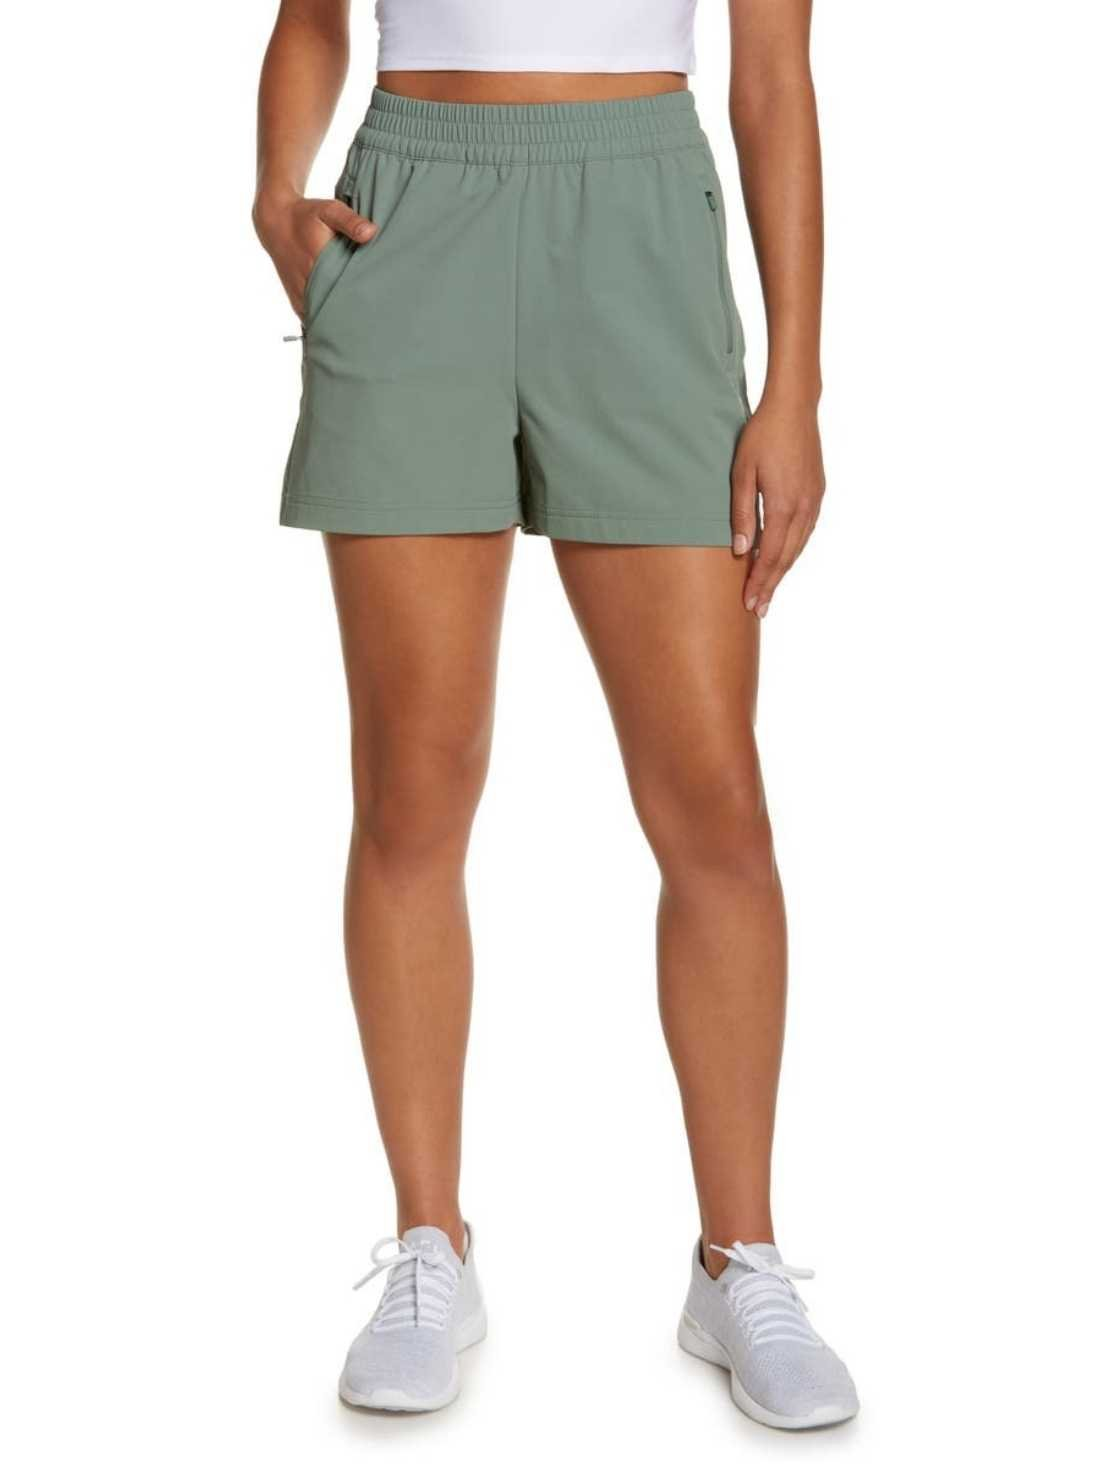 Water-resistant hiking shorts